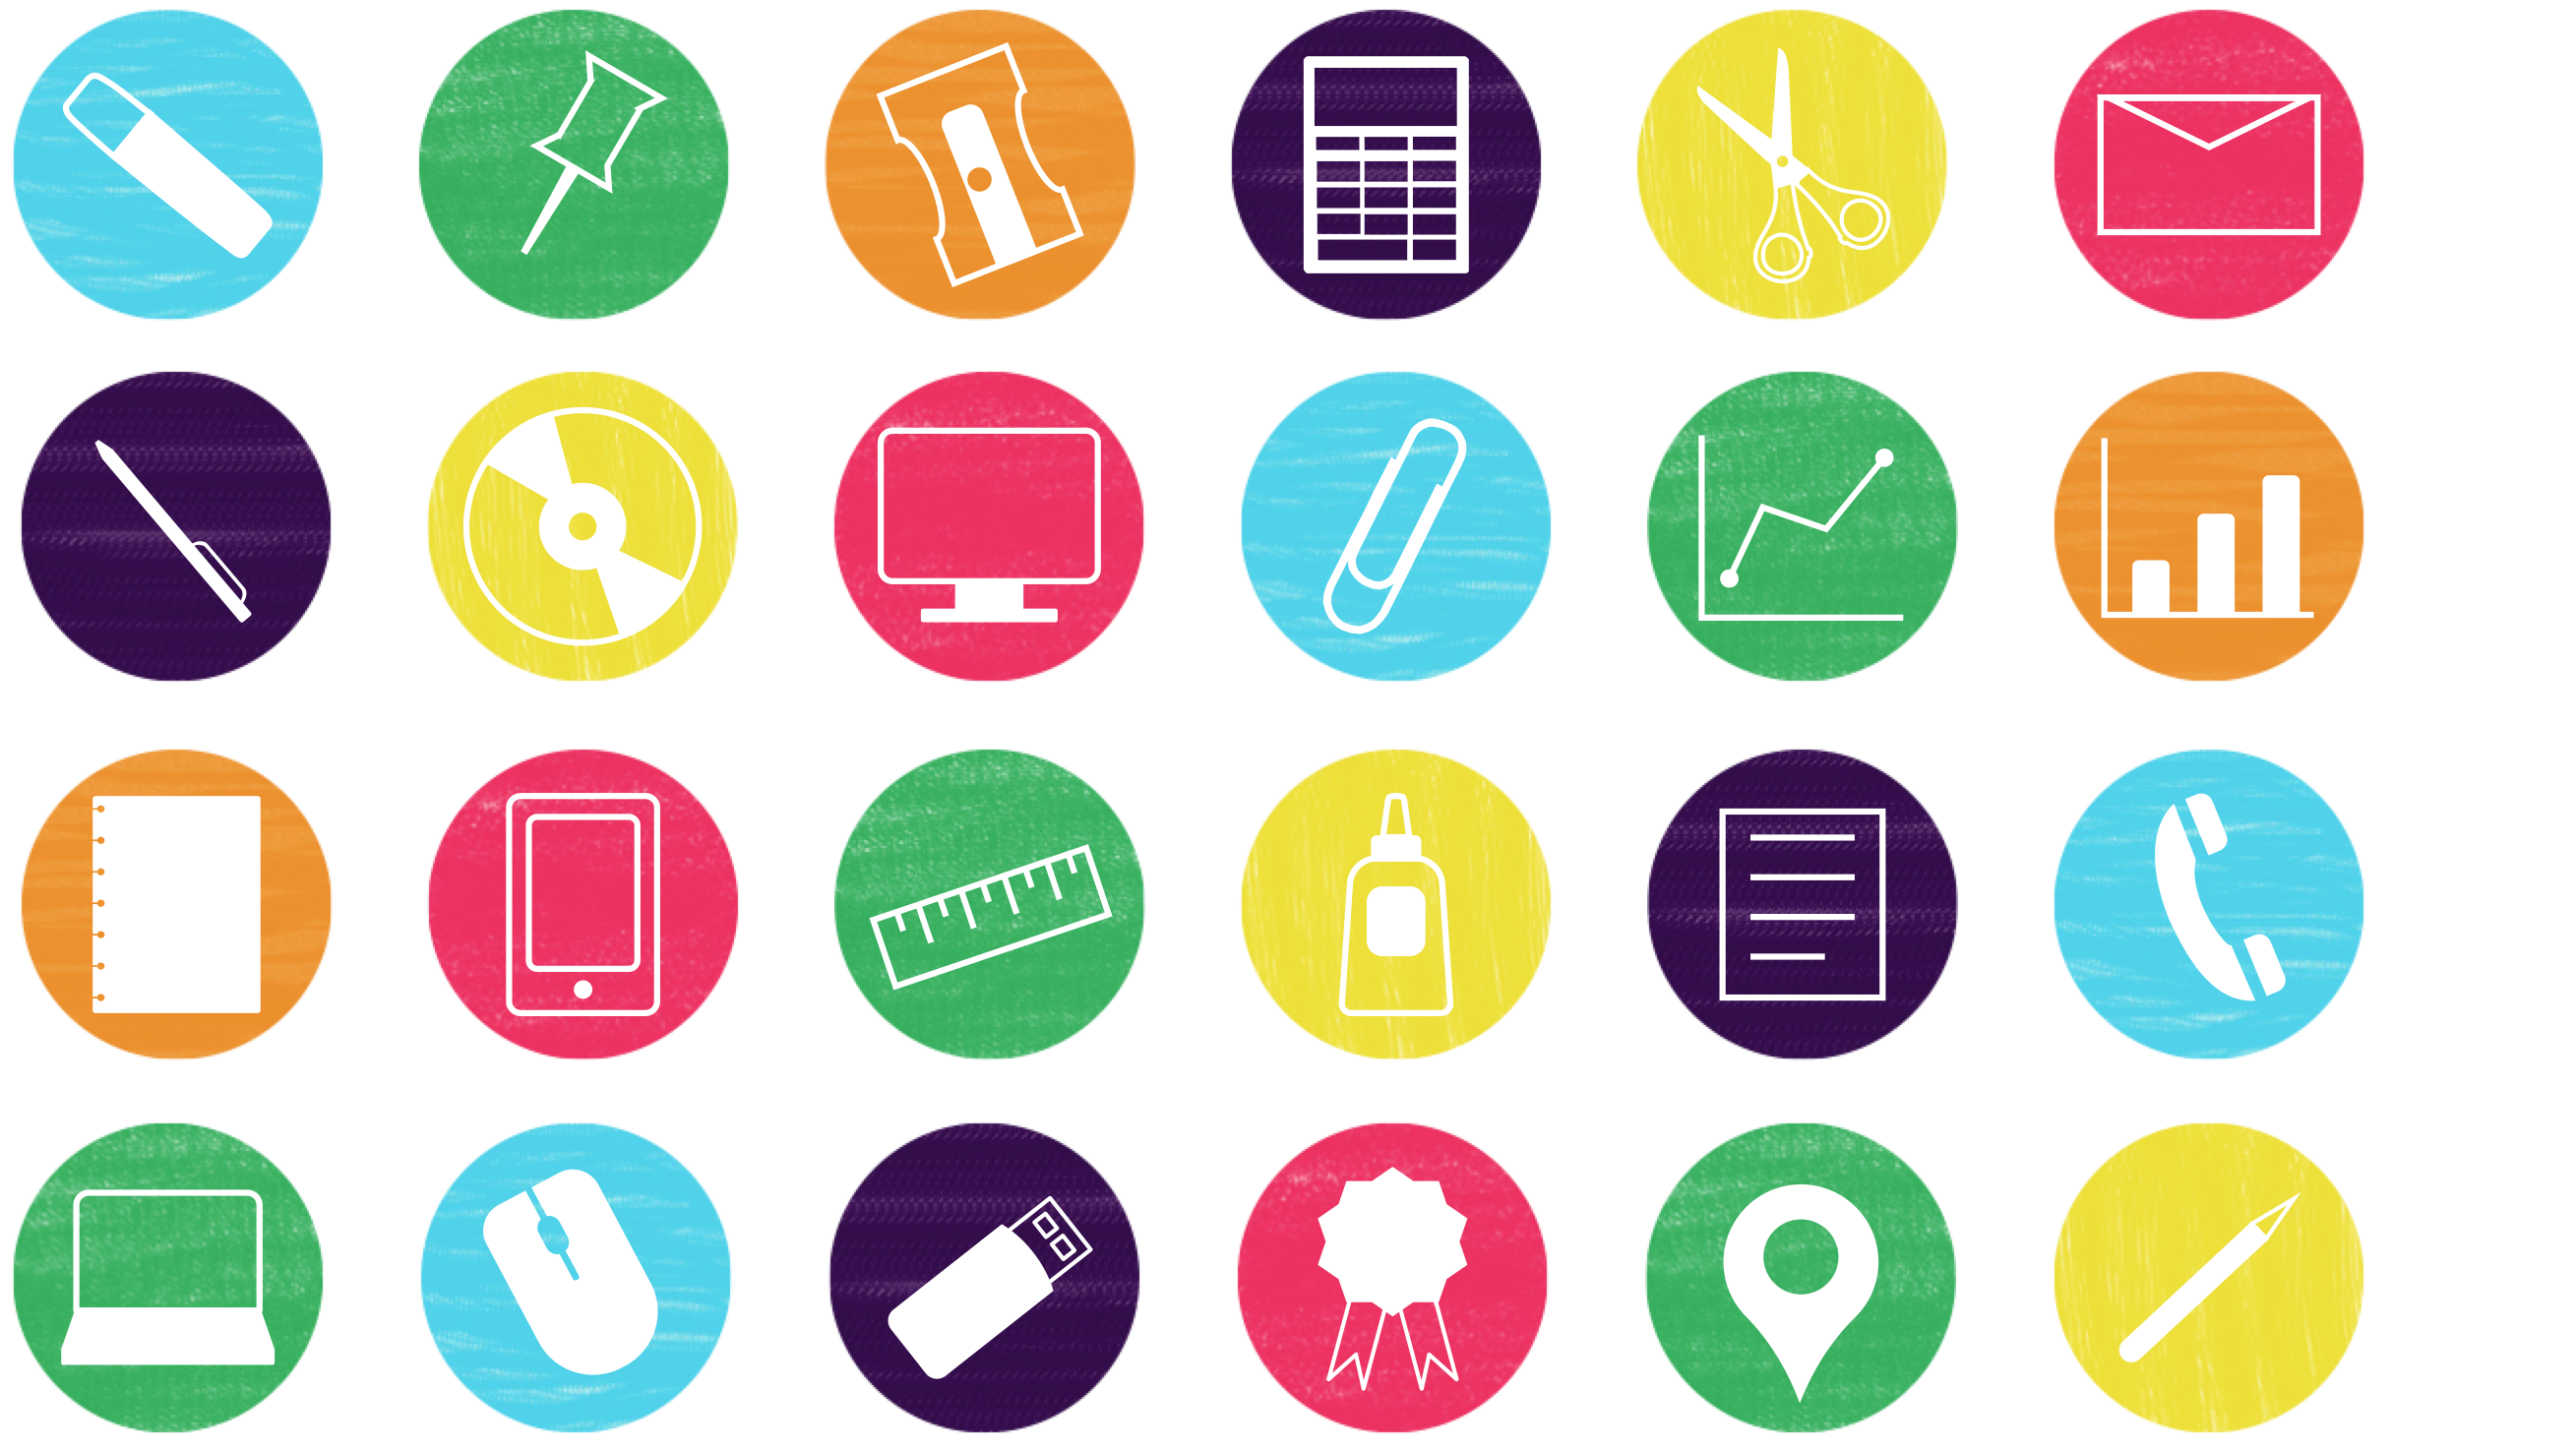 Colorful Office Icons These great, free icons are a must